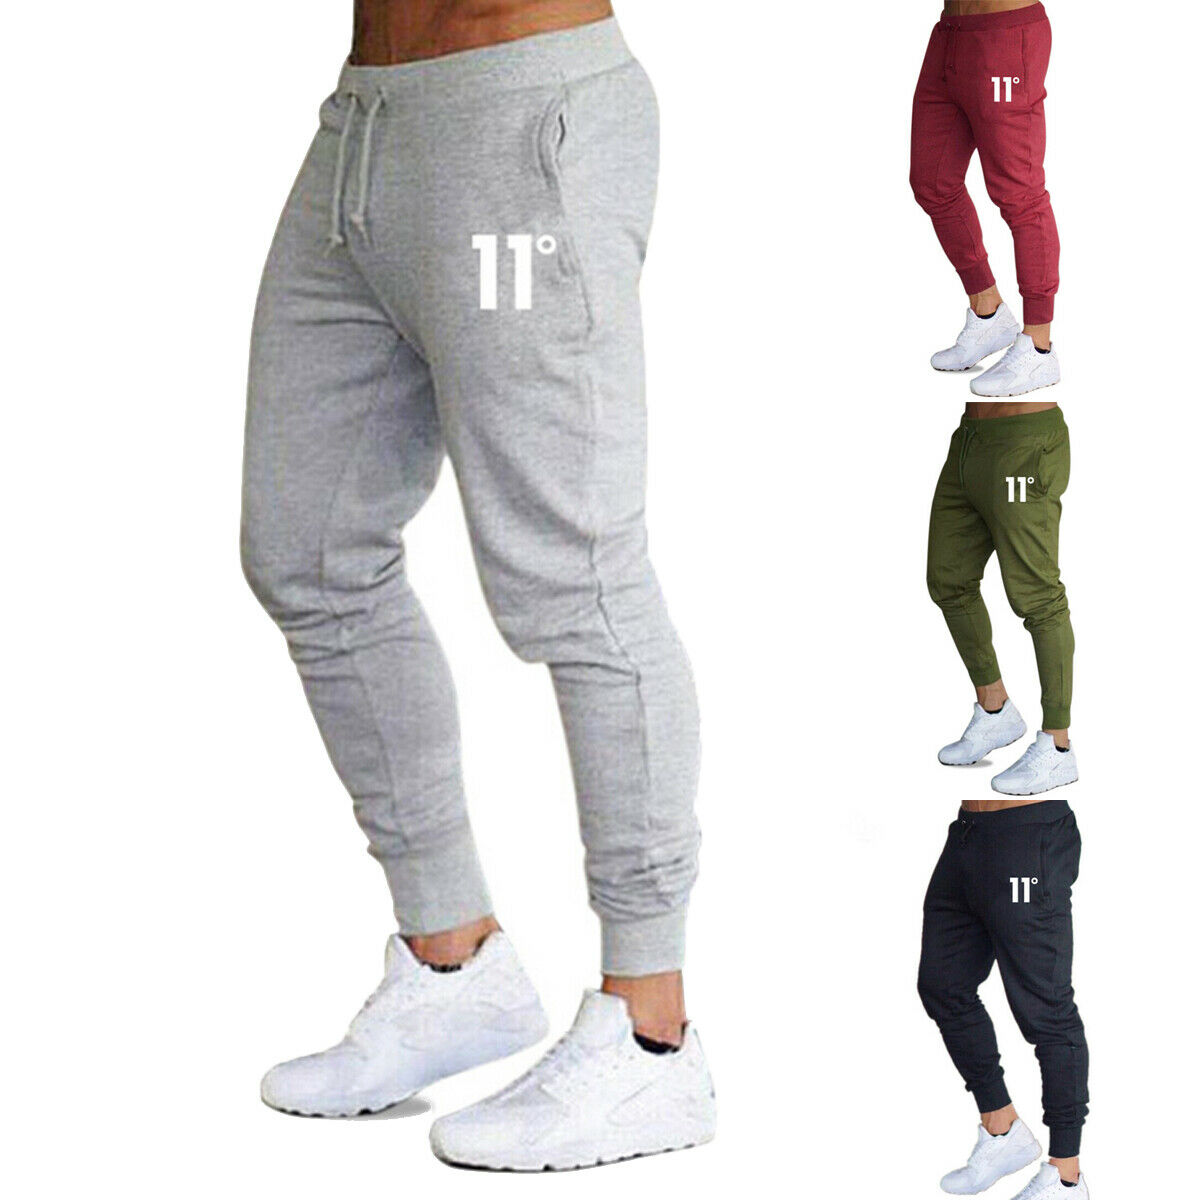 Hot Mens Casual Slim Fit Tracksuit Sports Solid Male Gym Cotton Skinny Joggers Sweat Casual Pants Tr